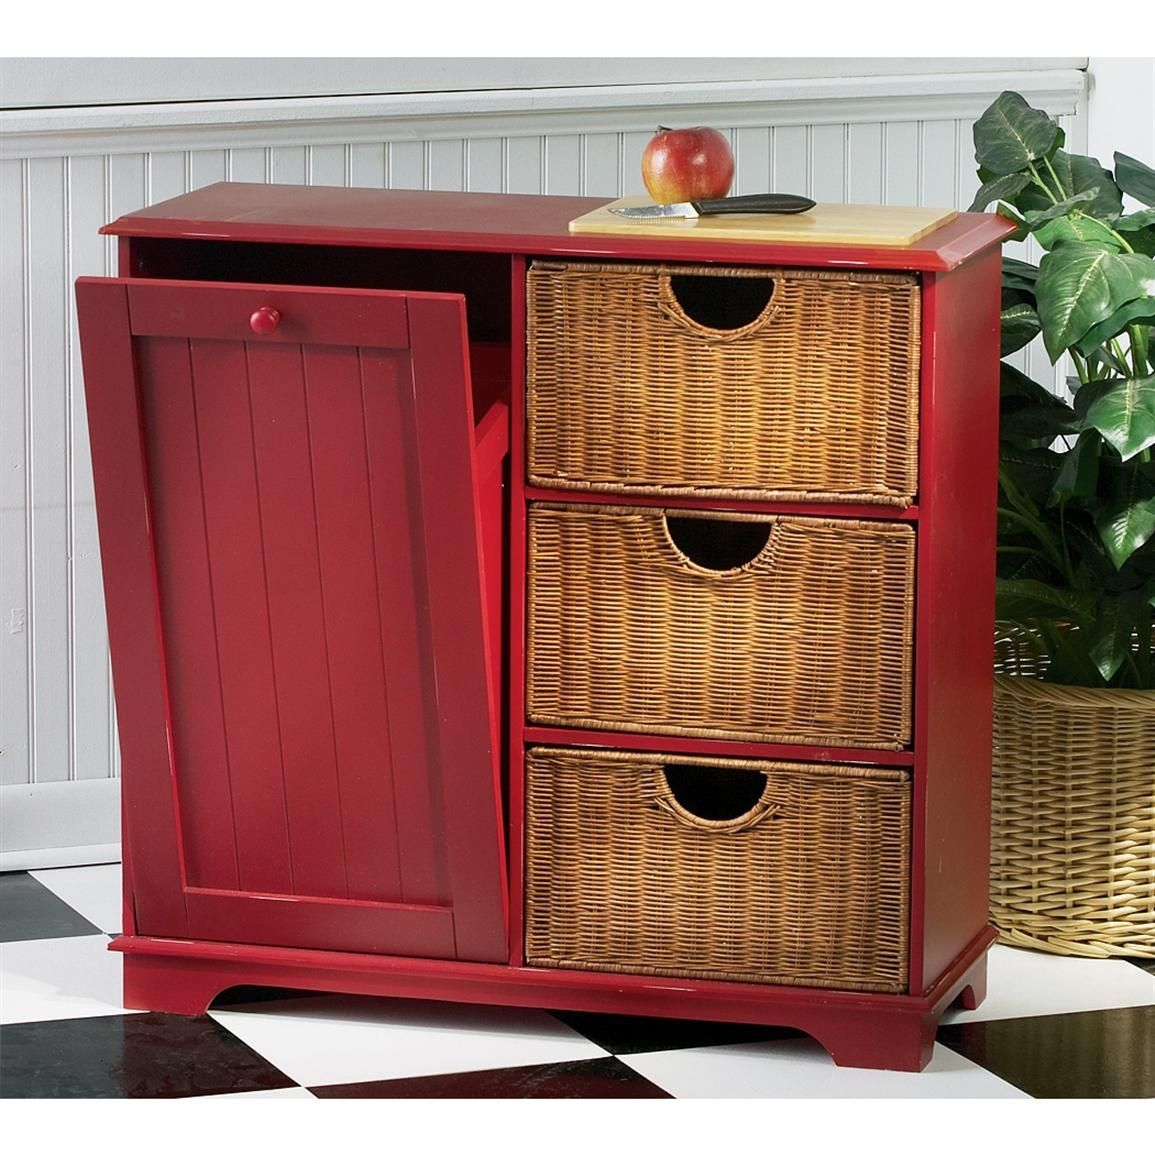 DIY Pull Out Trash Can In A Kitchen Cabinet (Amazing Idea)